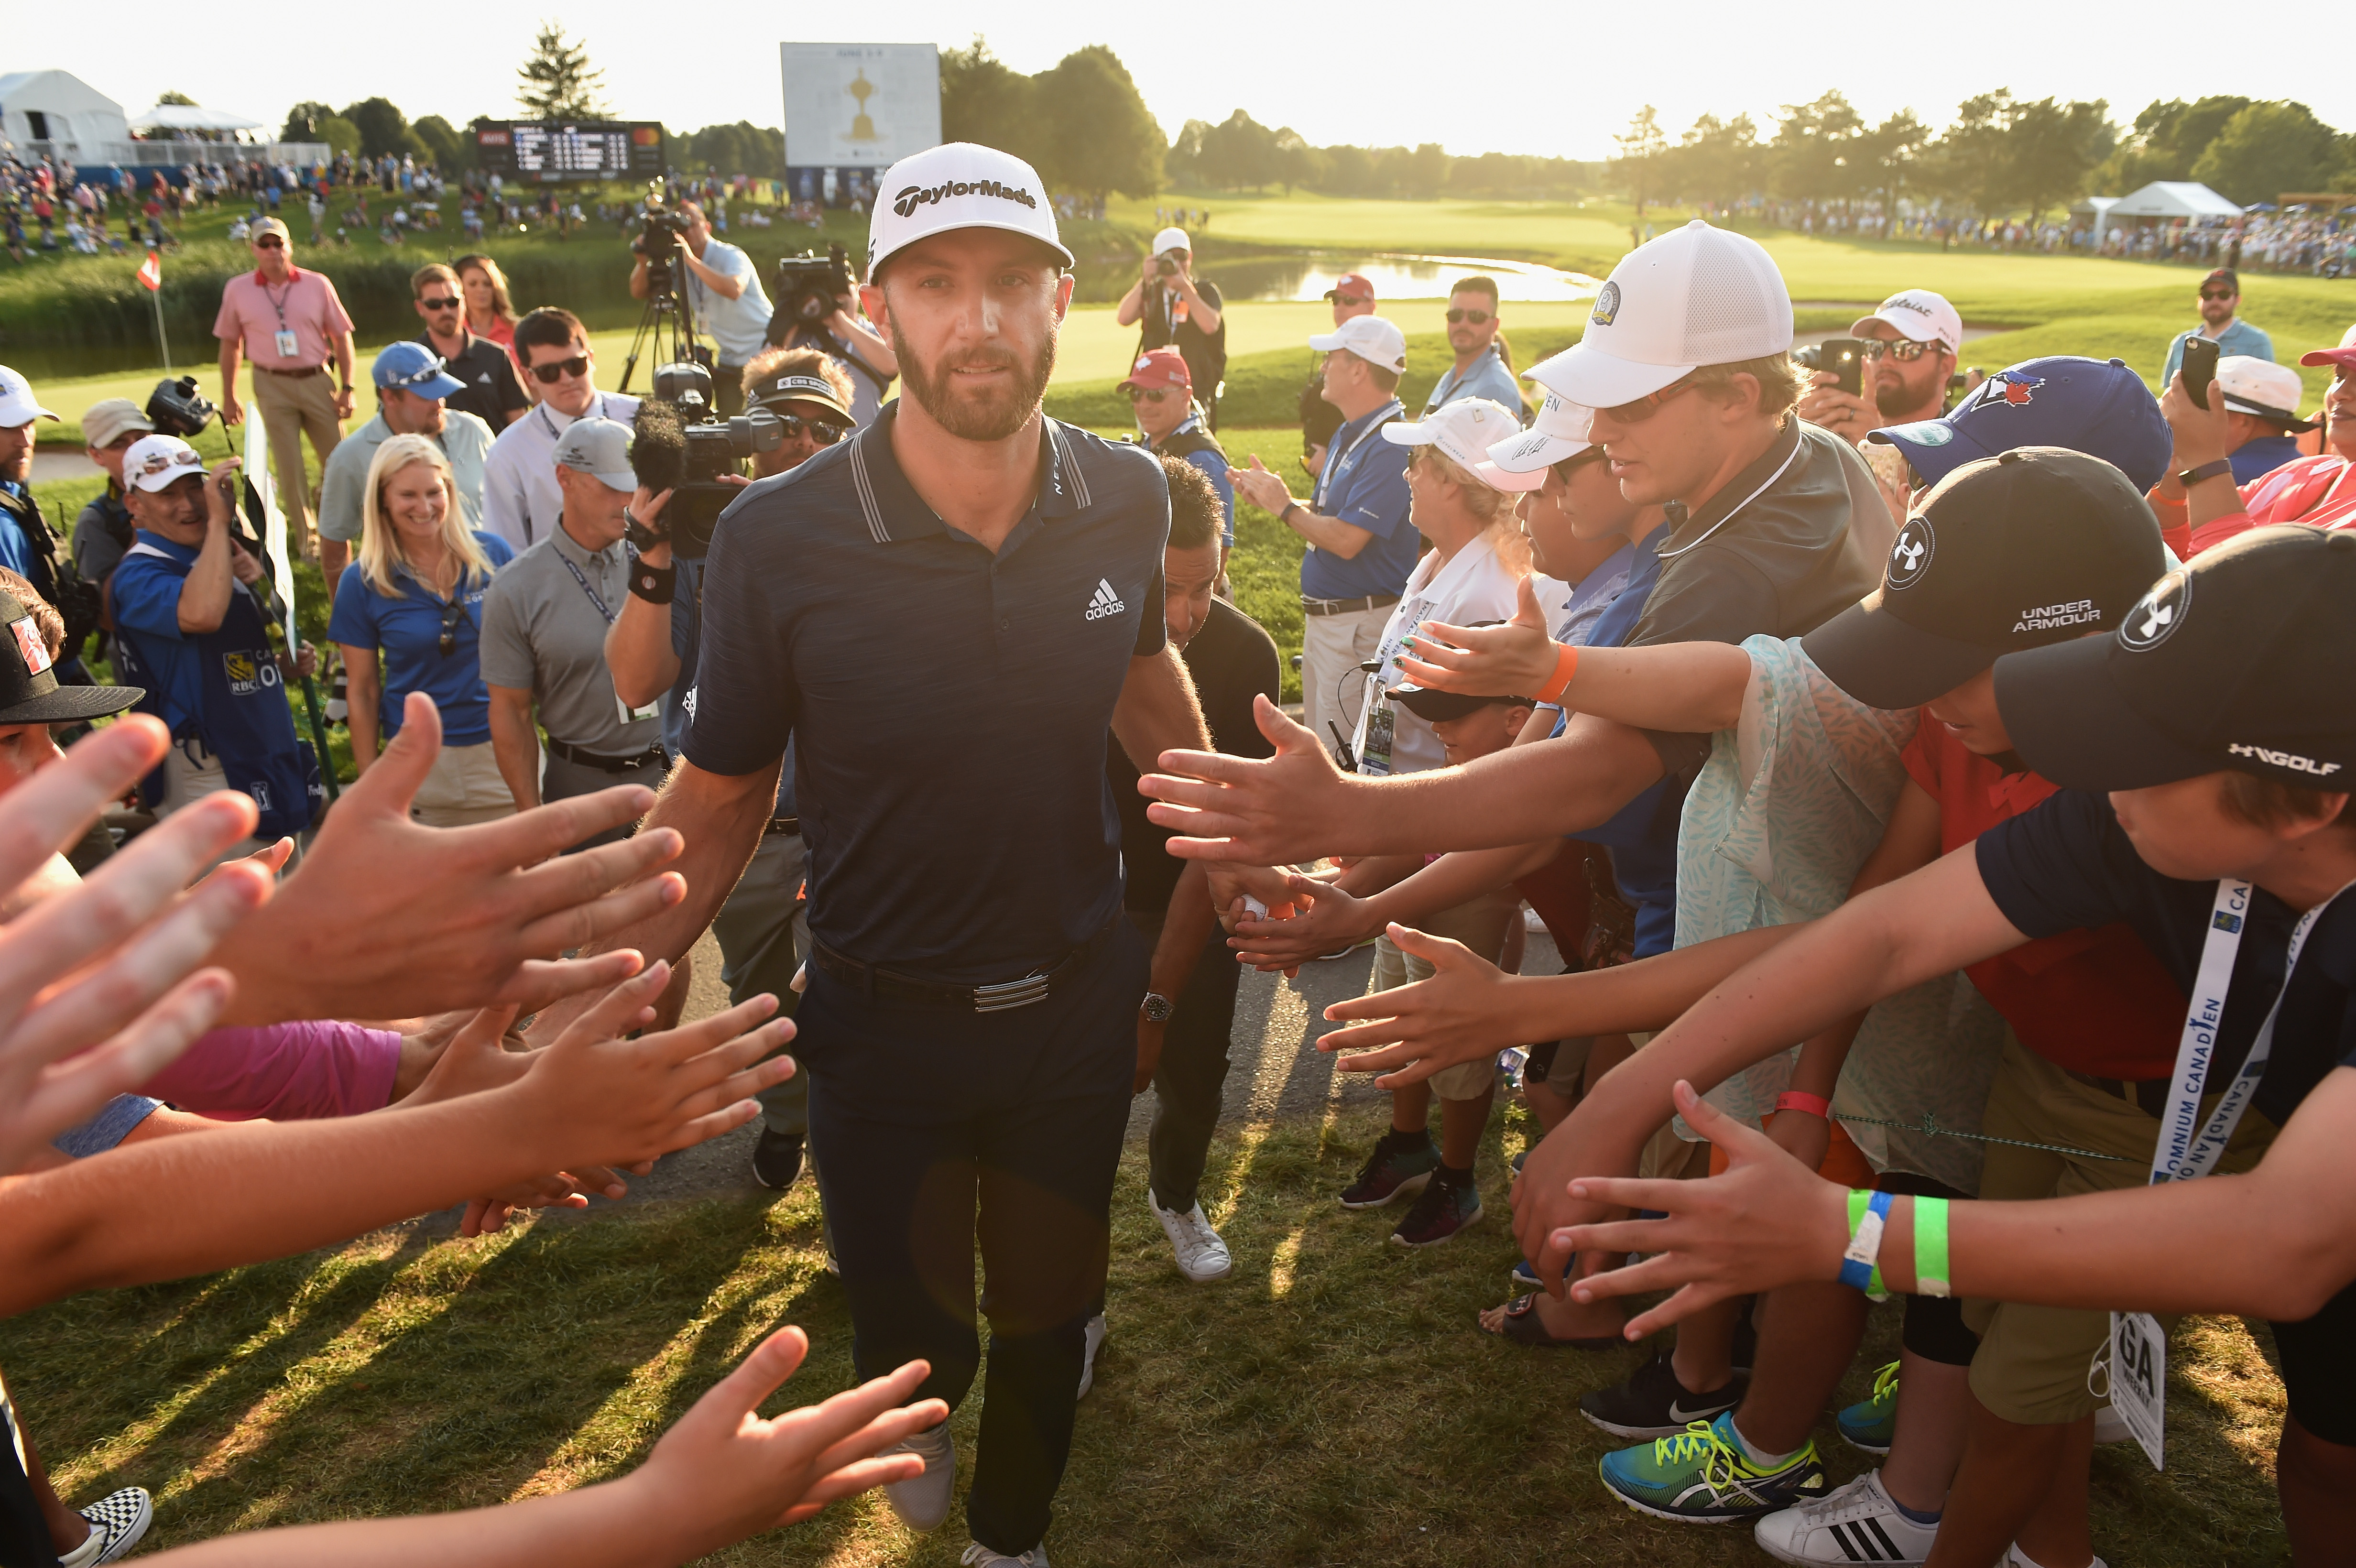 OAKVILLE, ON - JULY 29: Dustin Johnson celebrates his winning putt on the 18th hole by greeting fans Adam Scott of Australia Harris English exits the course during the final round at the RBC Canadian Open at Glen Abbey Golf Club on July 29, 2018 in Oakville, Canada. (Photo by Minas Panagiotakis/Getty Images)